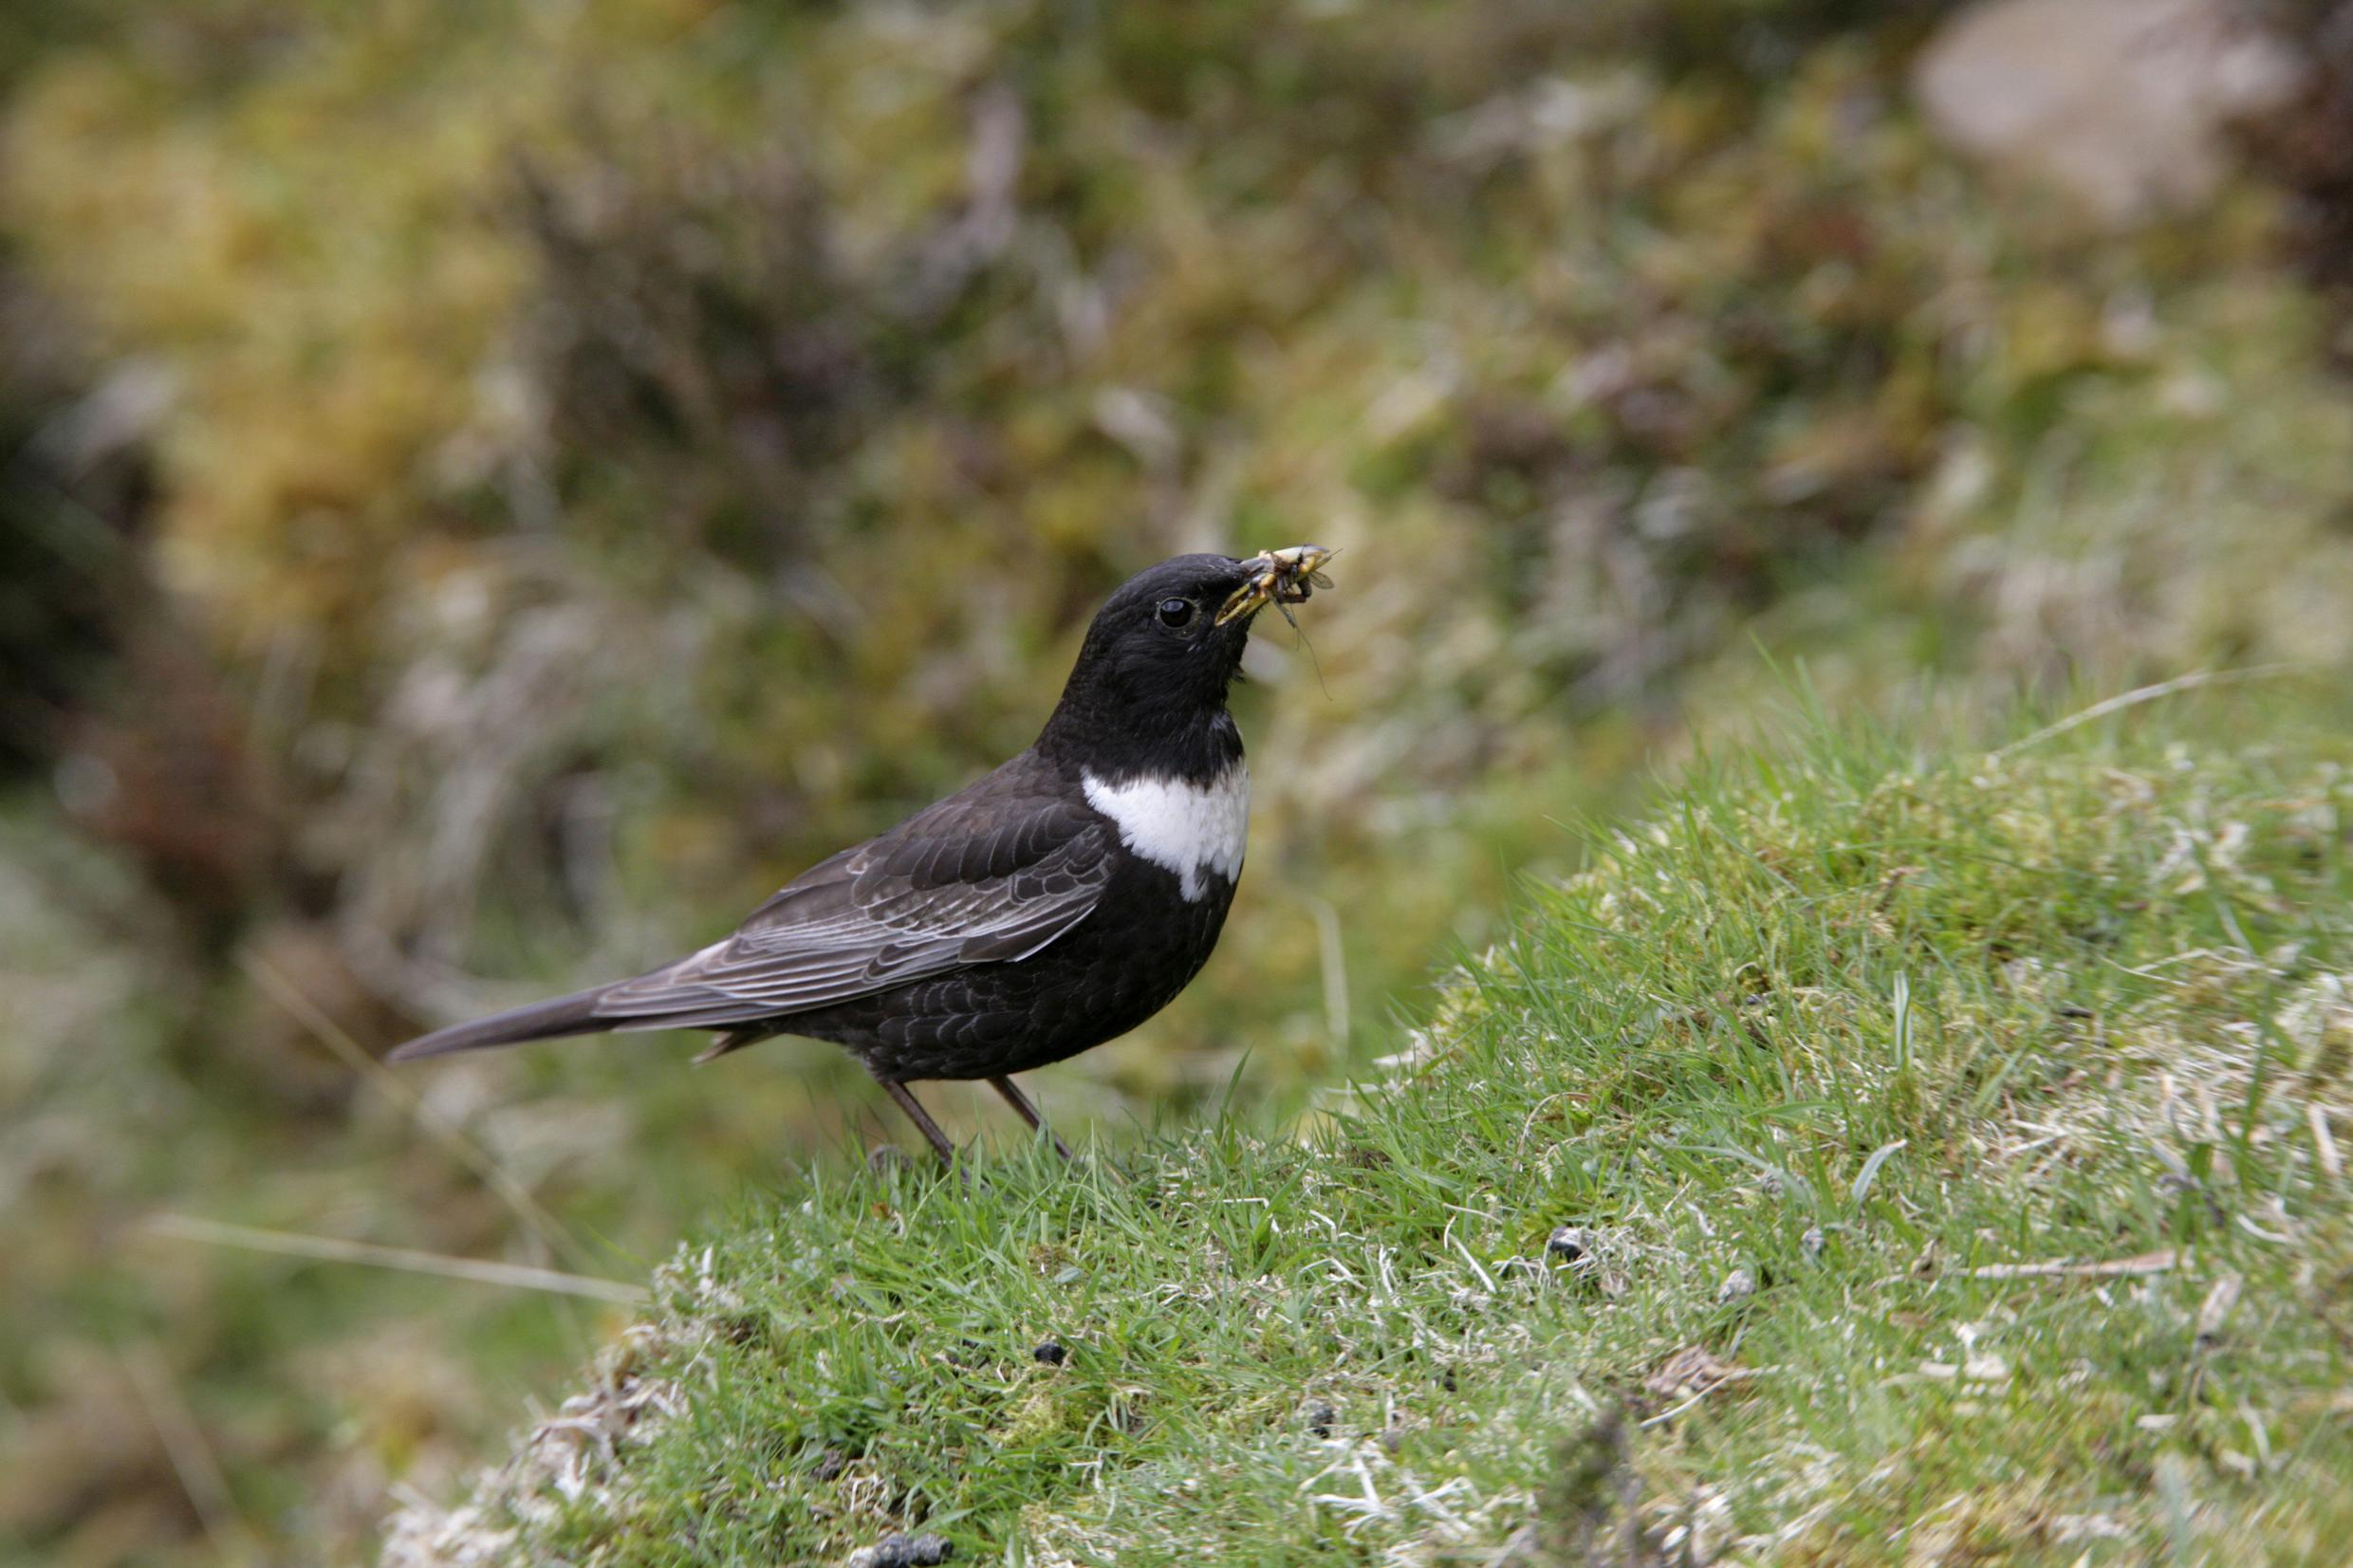 In praise of the monadhliaths scottish nature notes for Upullandpay